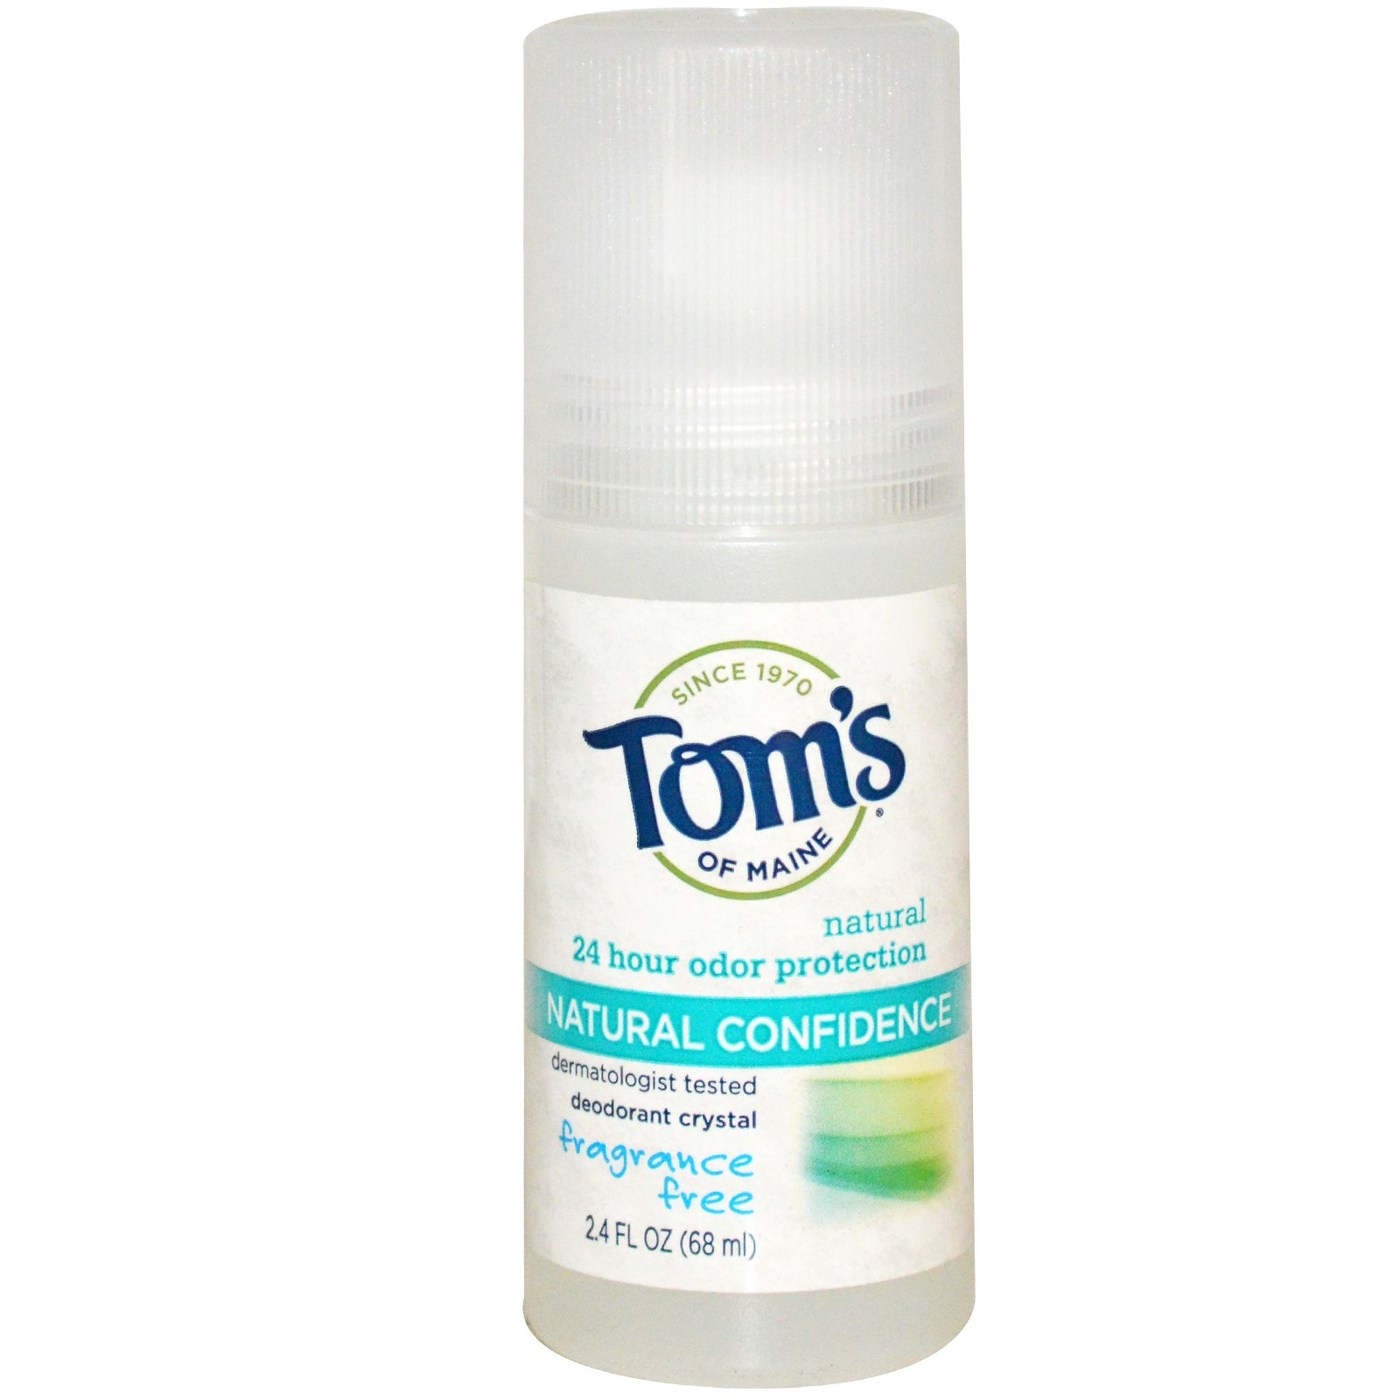 Tom S Of Maine Natural Confidence Deodorant Crystal